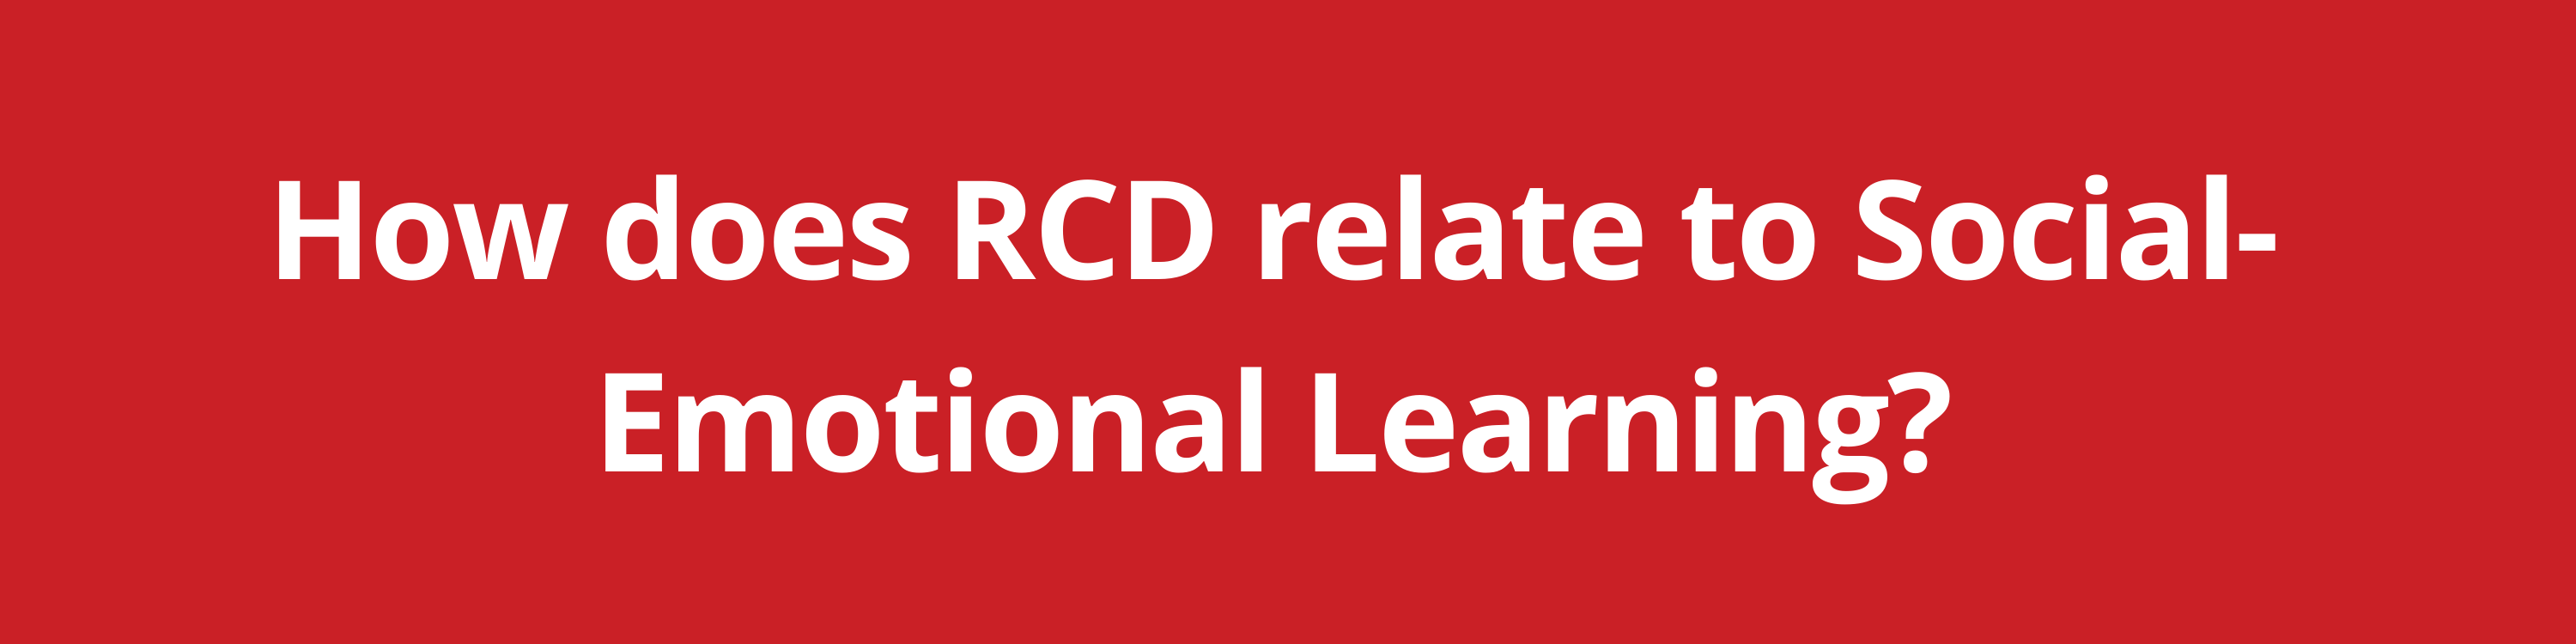 How does RCD relate to Social-Emotional Learning?